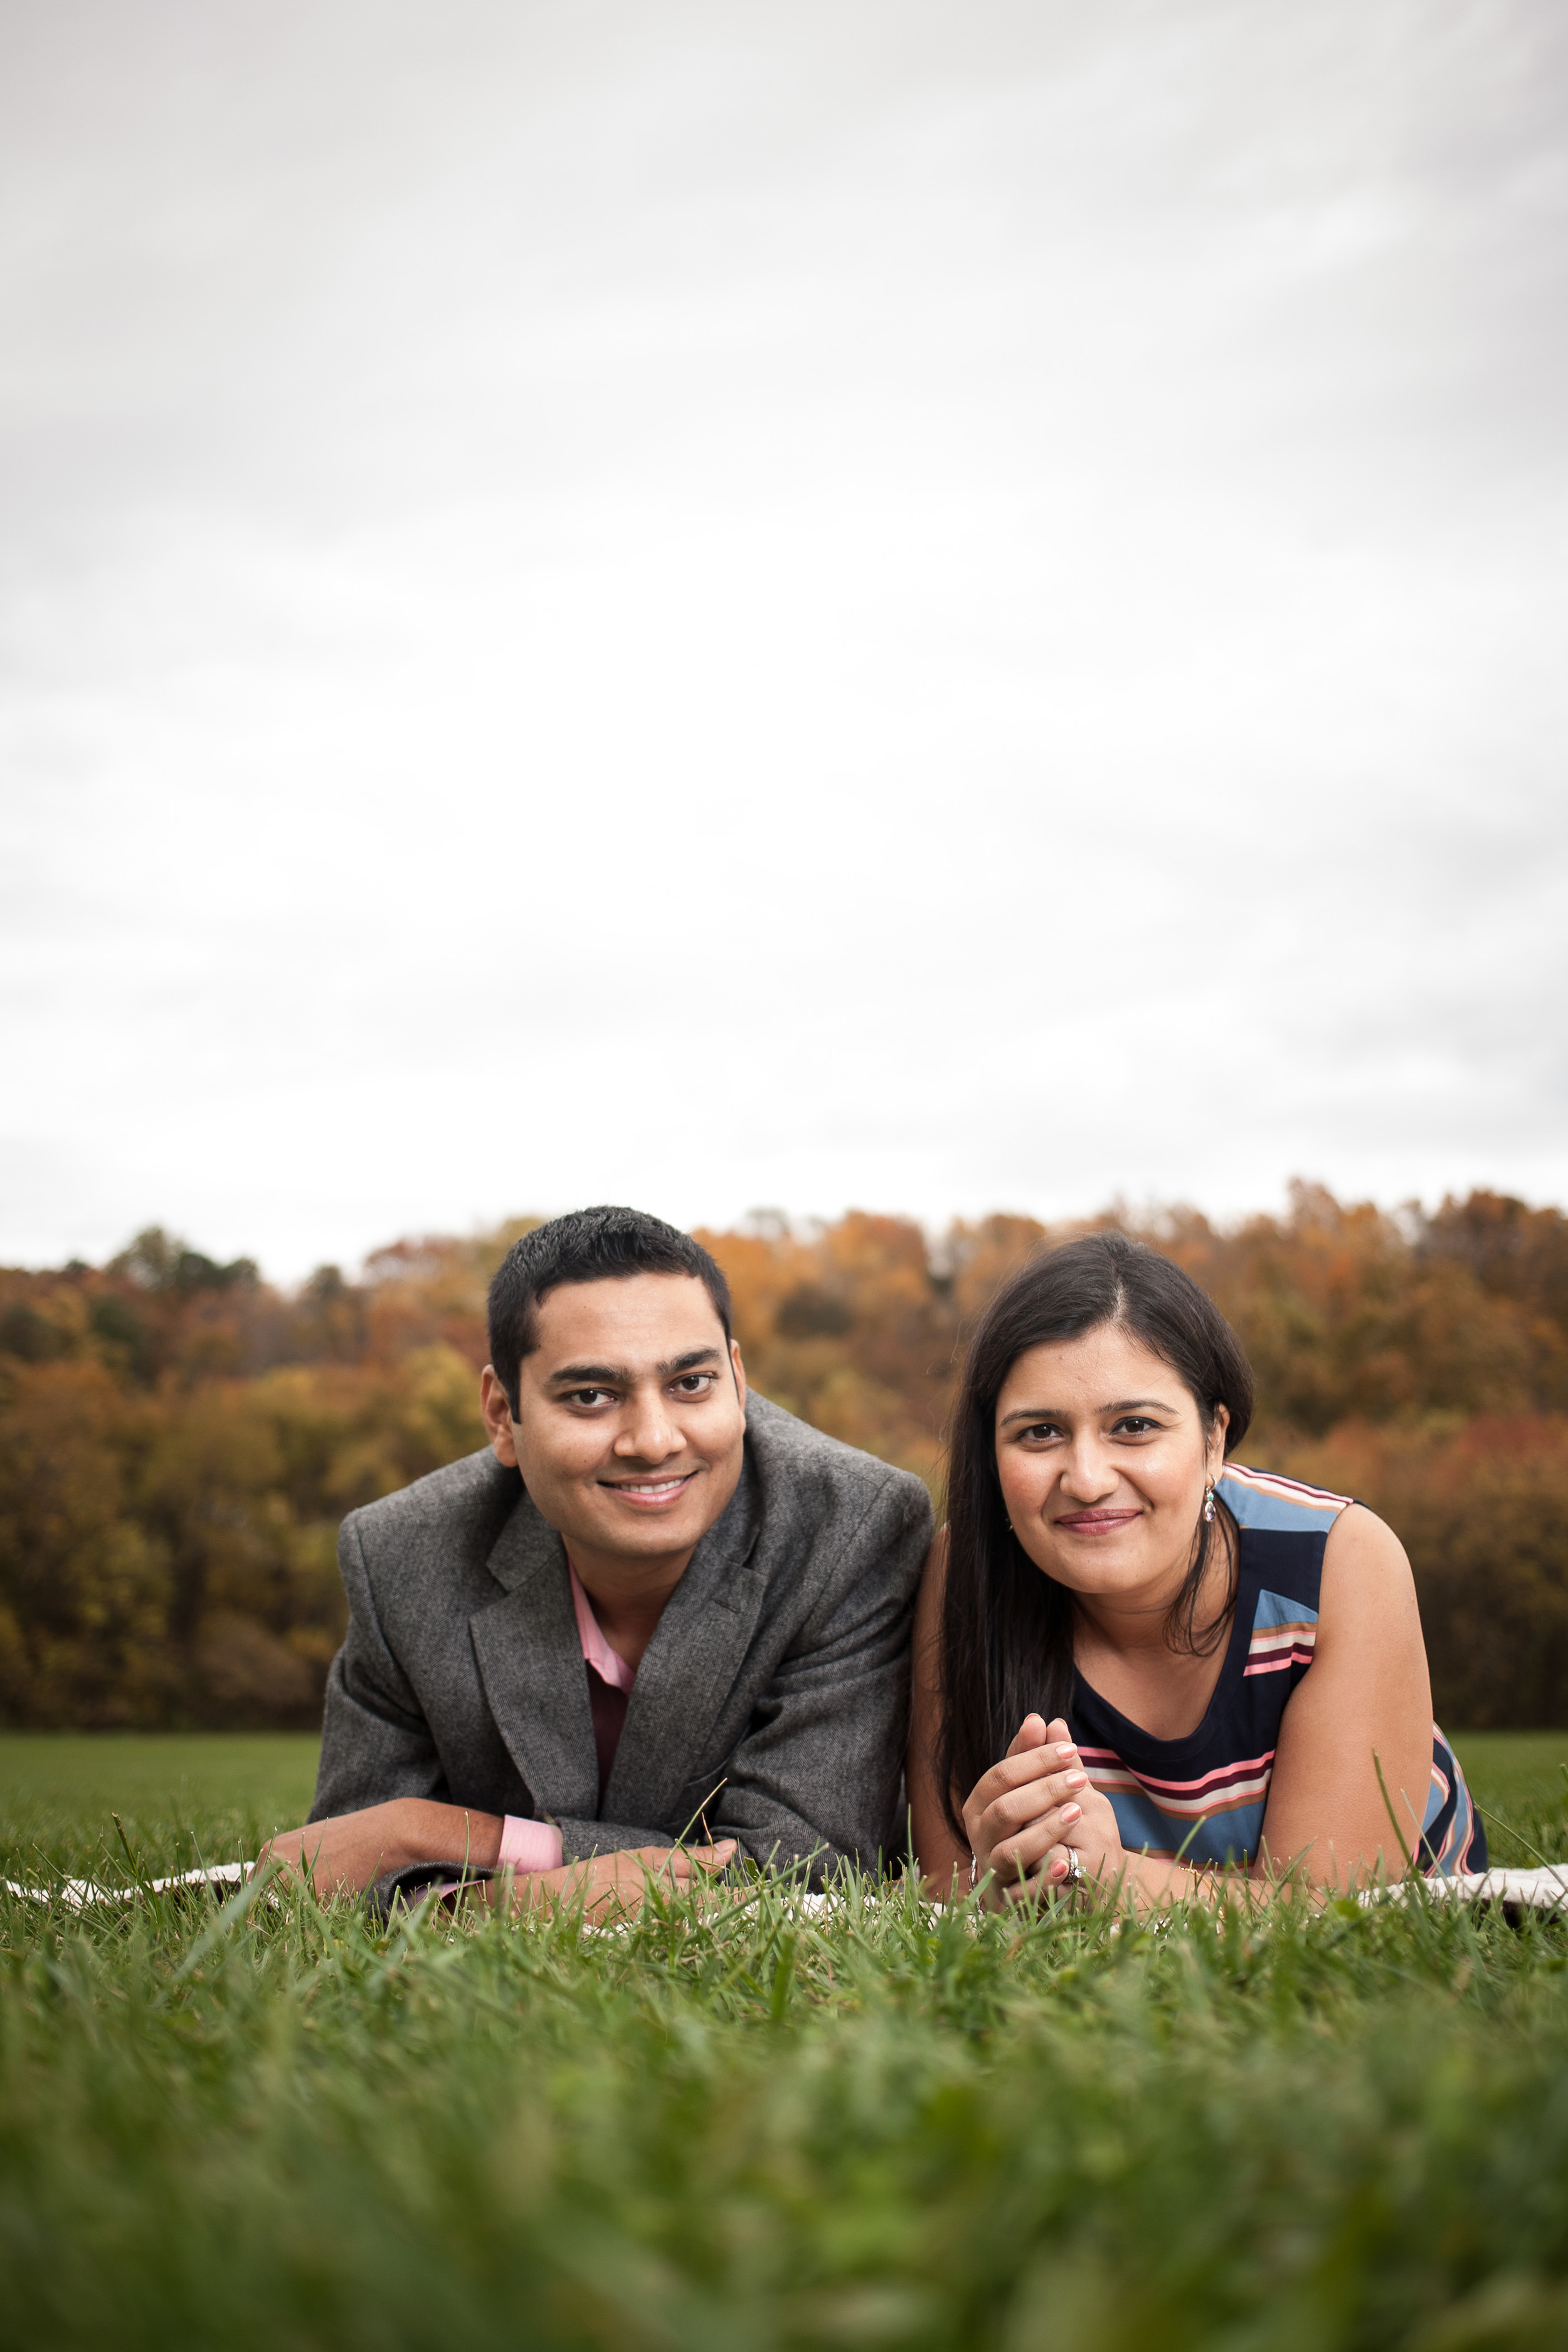 Fall photo session Green Hill Park Salem Virginia